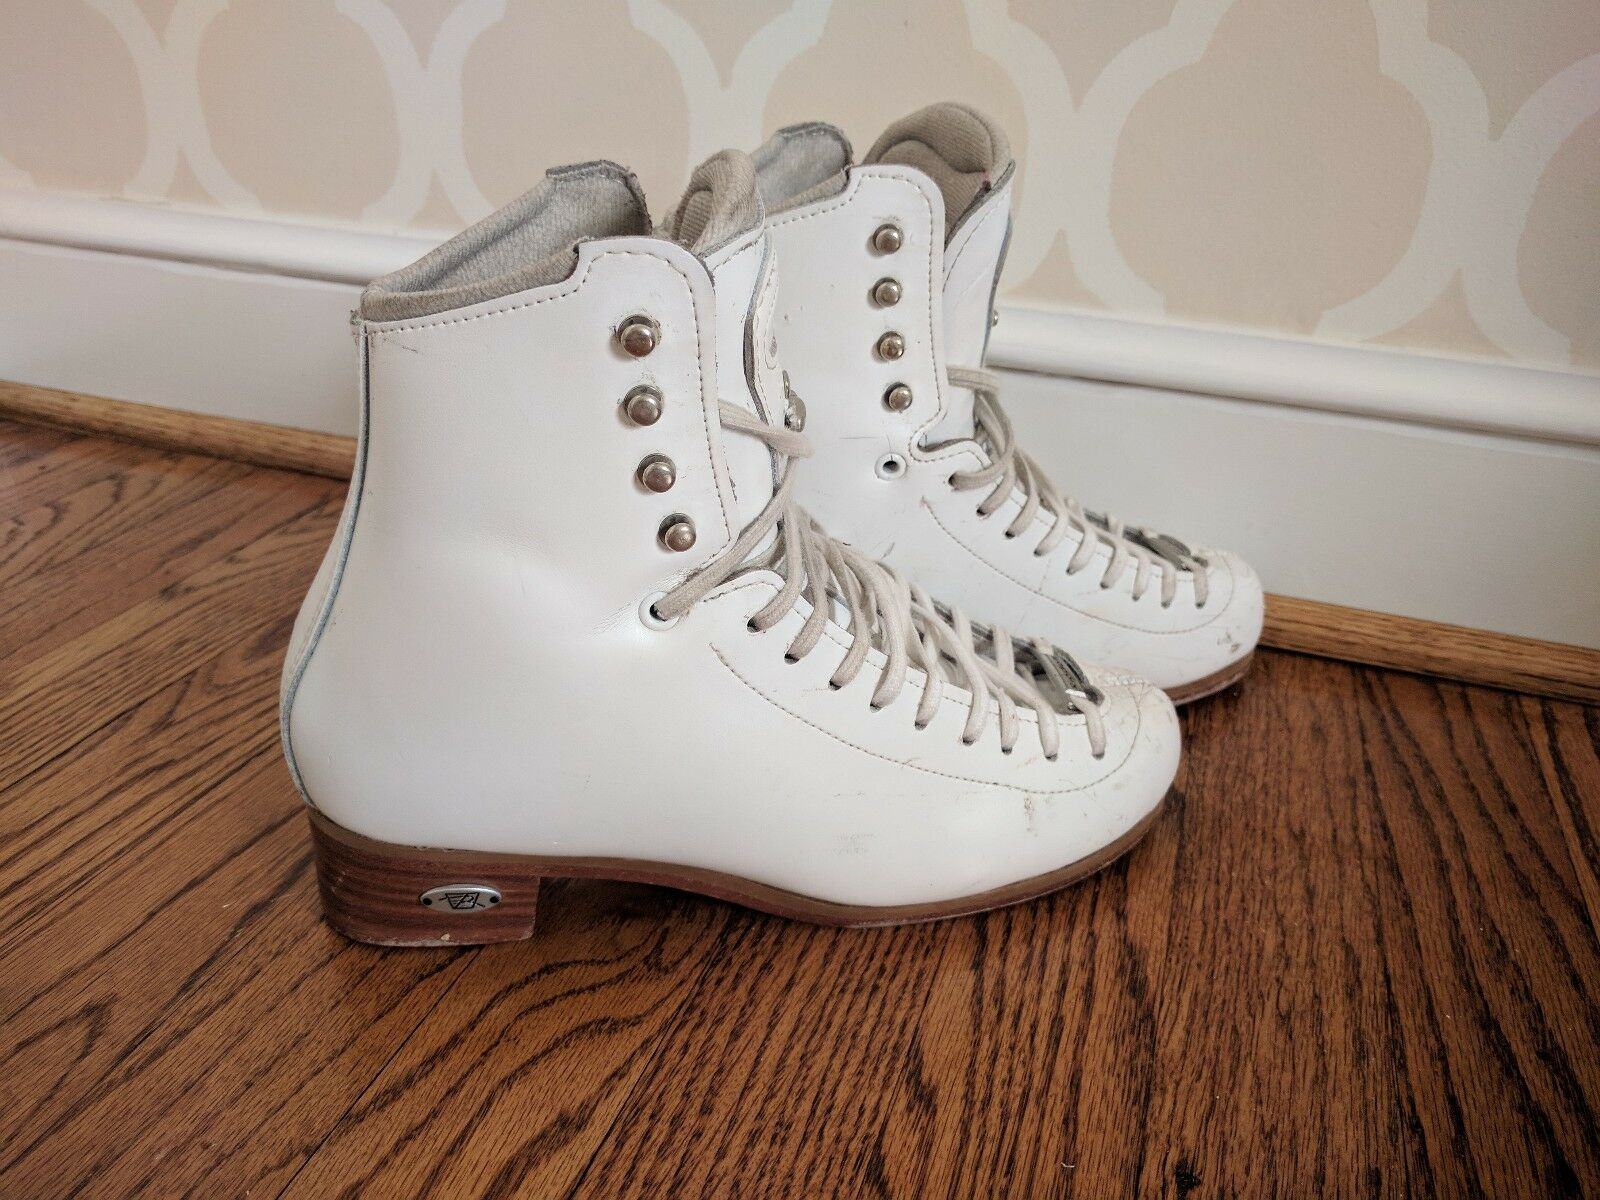 Reidell 255 Motion Ice Skating Boots  Ladies Size 5.5 Narrow  shop clearance